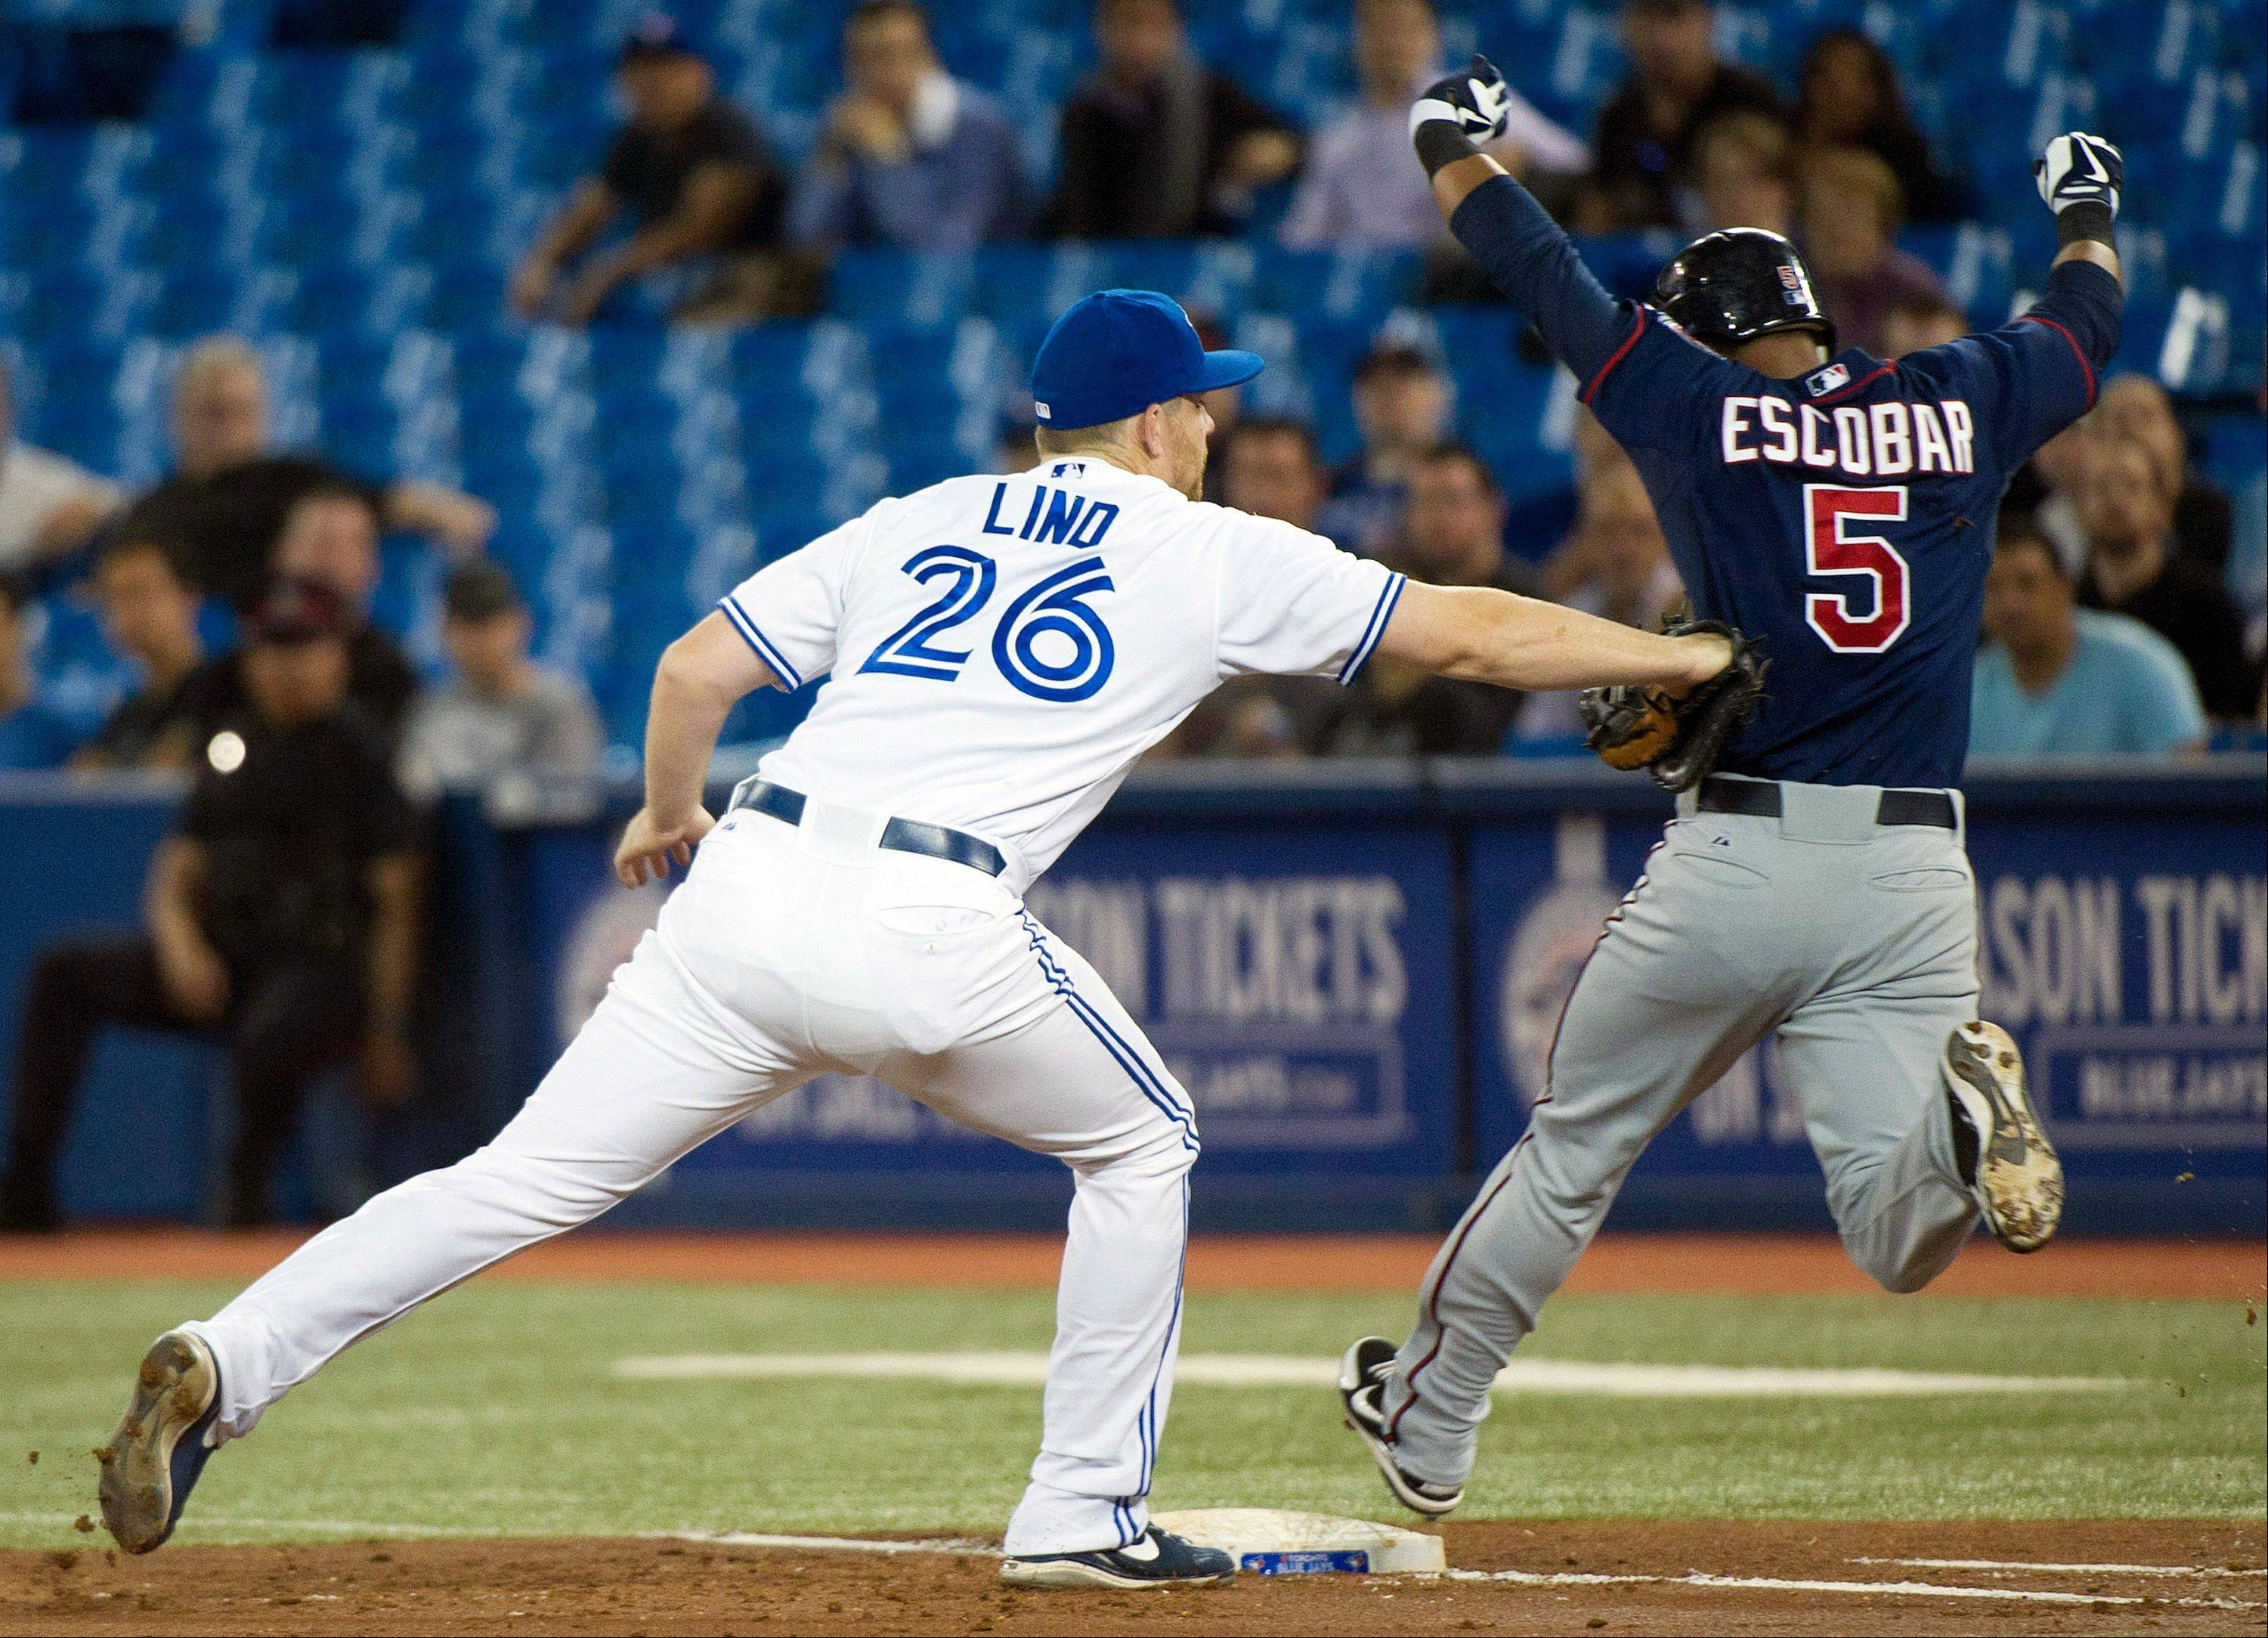 Blue Jays first baseman Adam Lind tags out Minnesota's Eduardo Escobar during third inning Tuesday in Toronto.